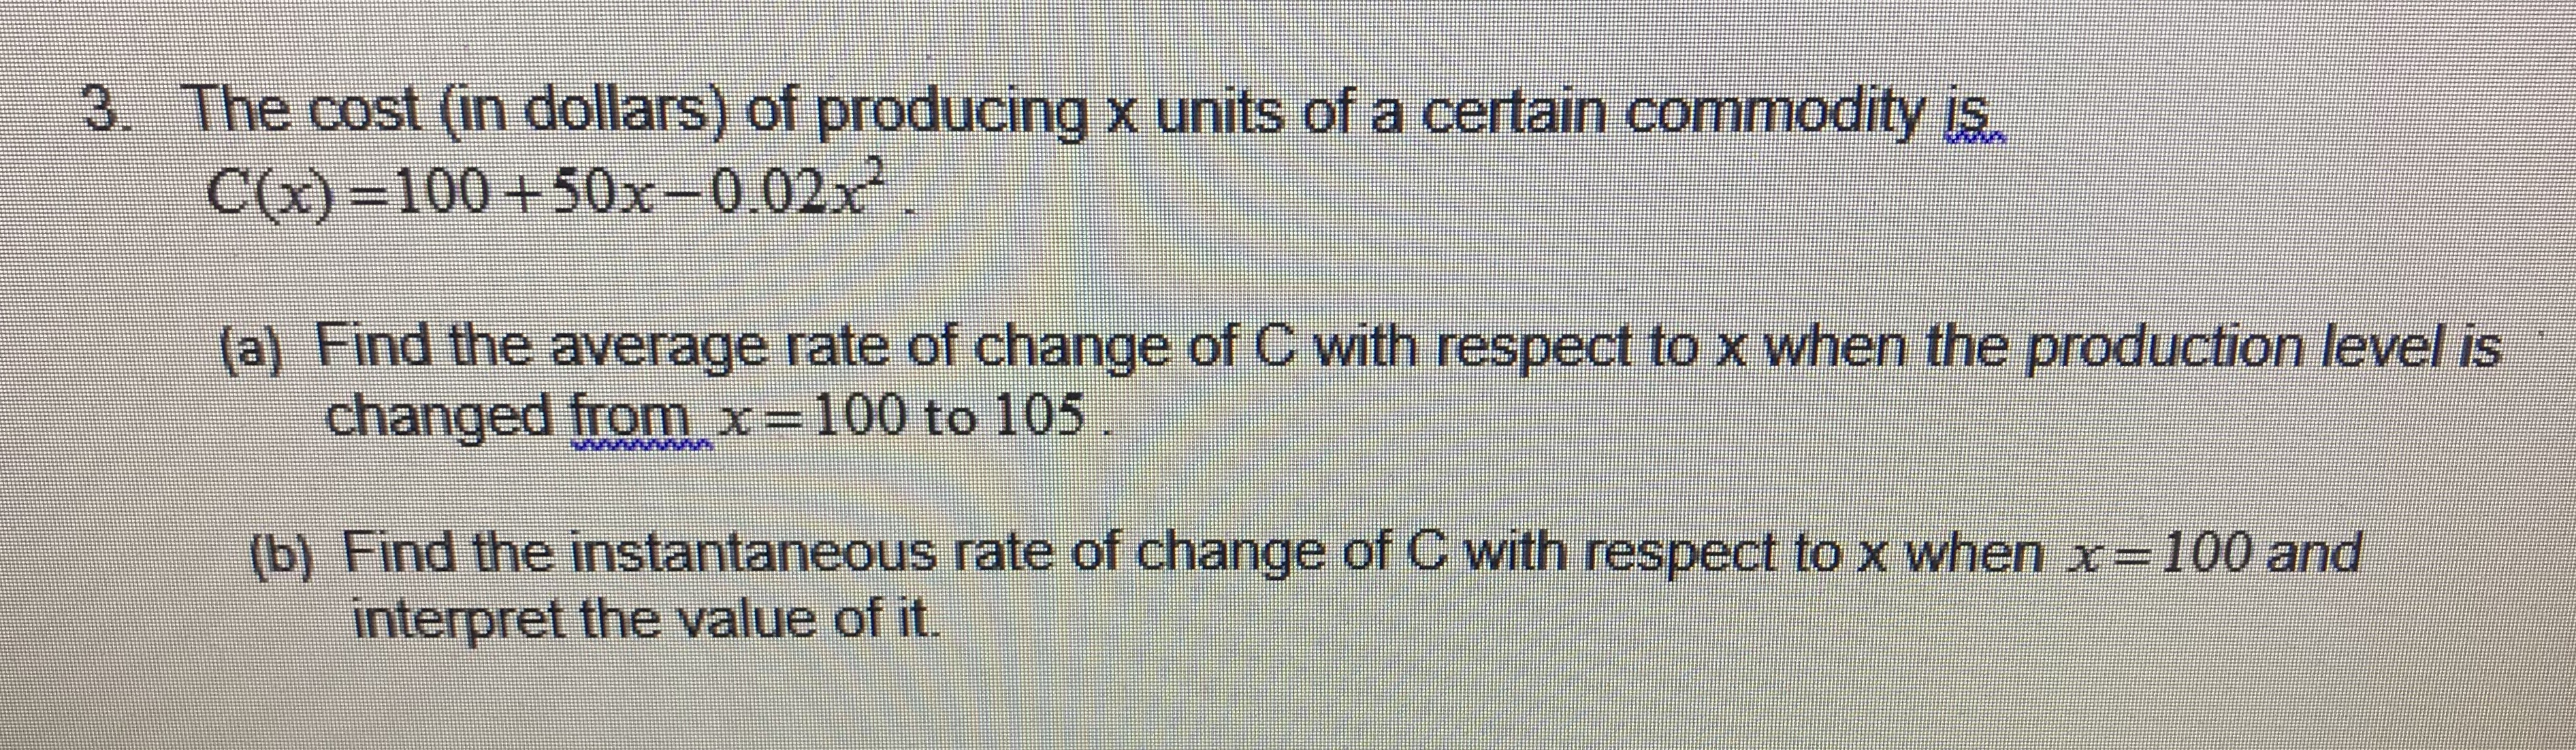 3. The cost (in dollars) of producing x units of a certain commodity is. C()-100+50x-0.02x2 (a) Find the average rate of change of C with respect to x when the production level is changed from x- 100 to 105 b) Find the instantaneous rate of change of C with respect to x when x- 100 and interpret the value of it.